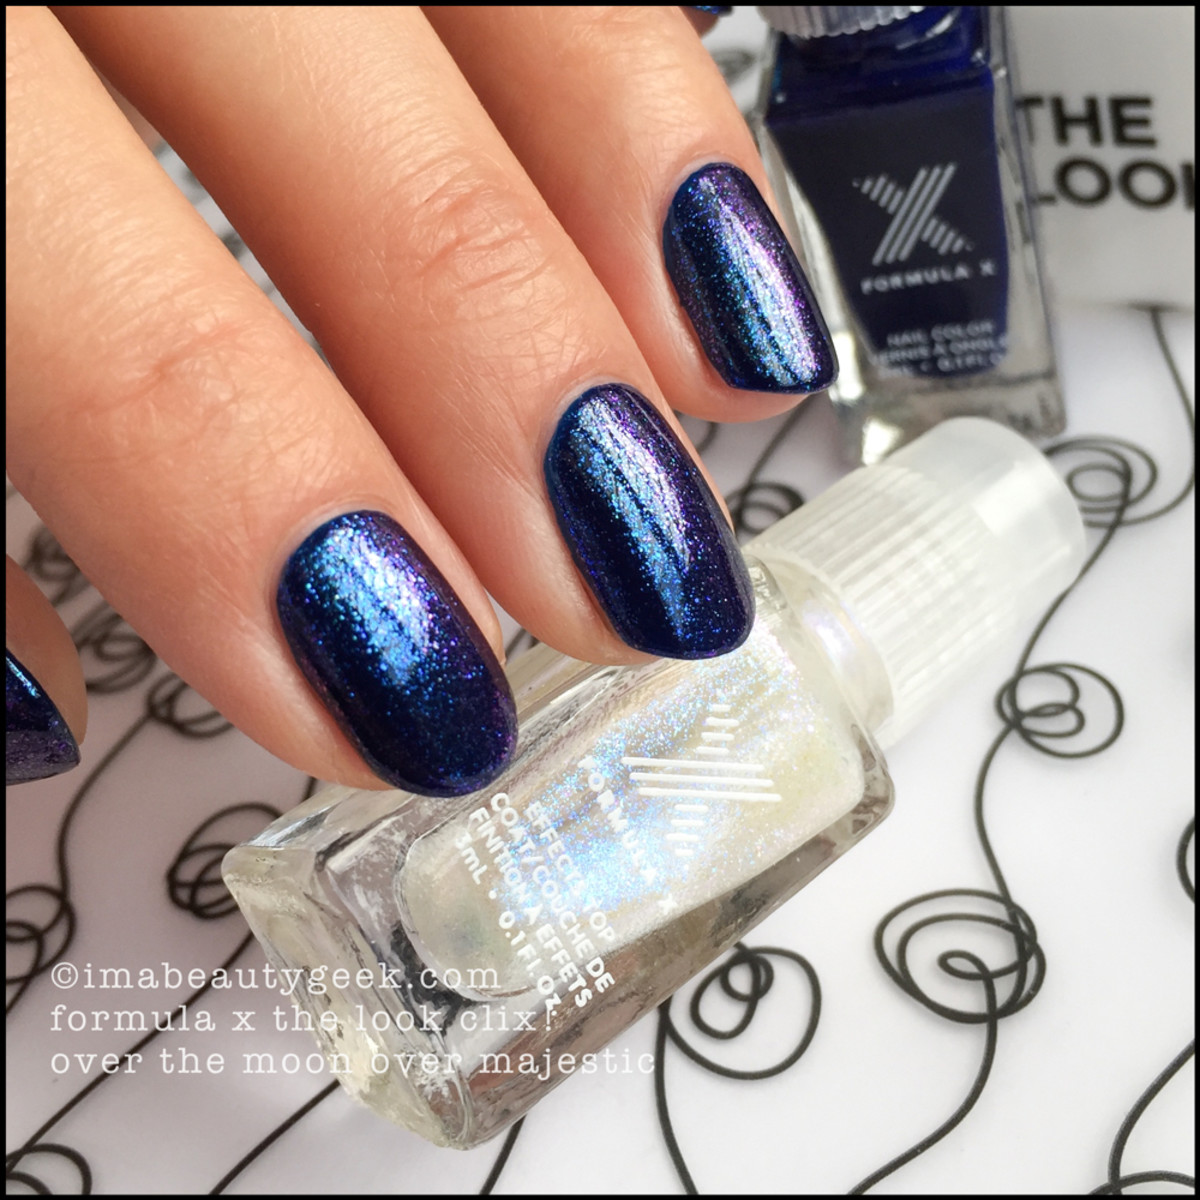 Formula X Over The Moon over Majestic The Look Clix Sephora 2015